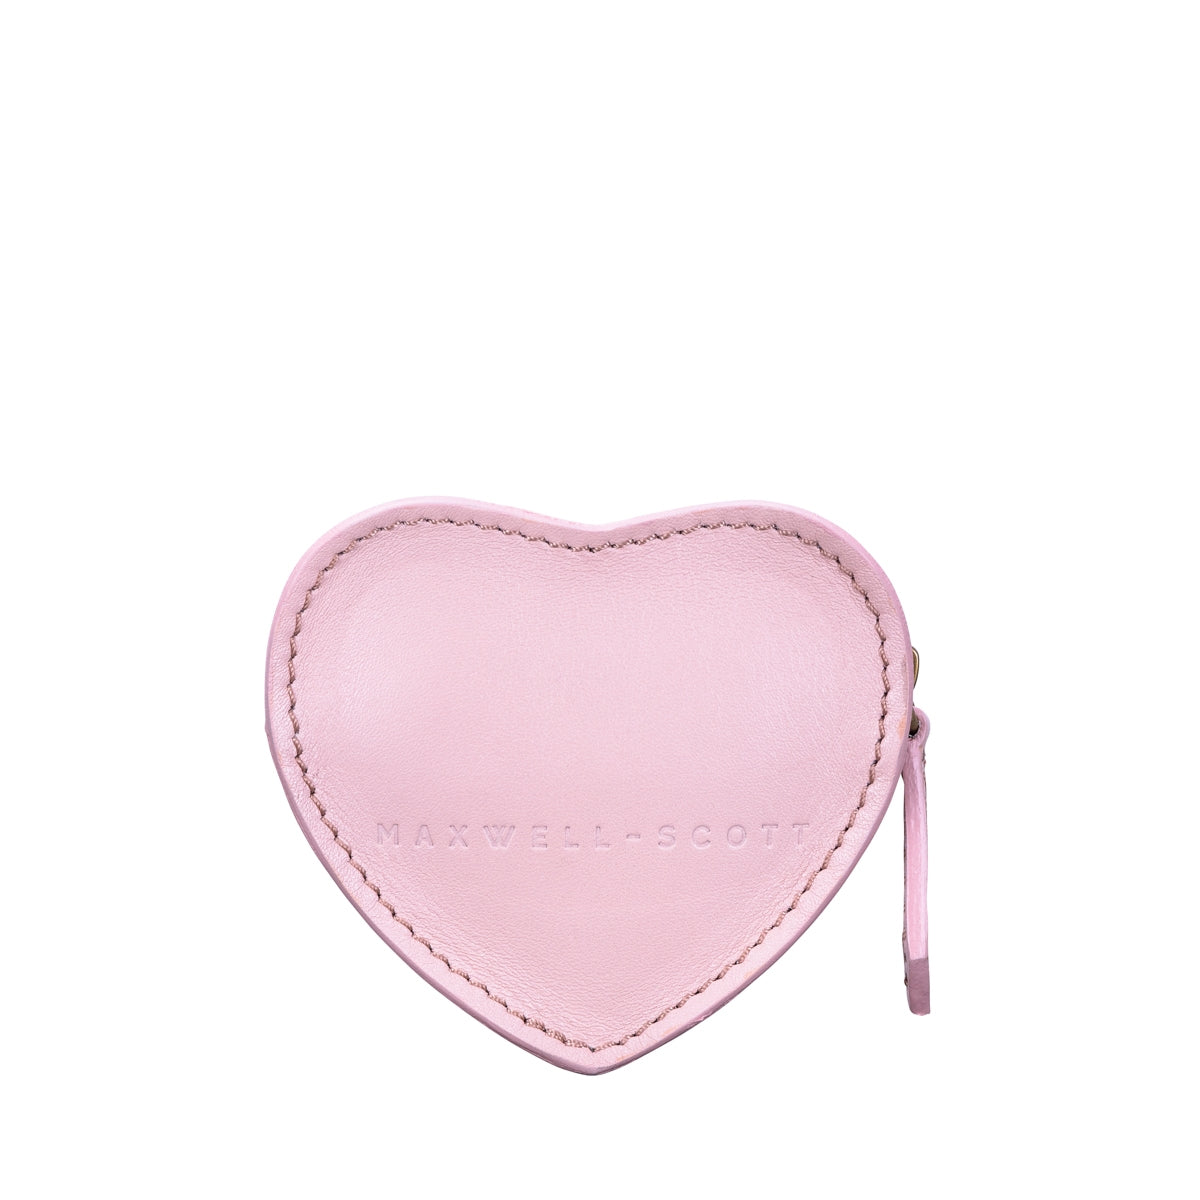 Image 3 of the 'Mirabella' Heart Shaped Pink Coin Purse